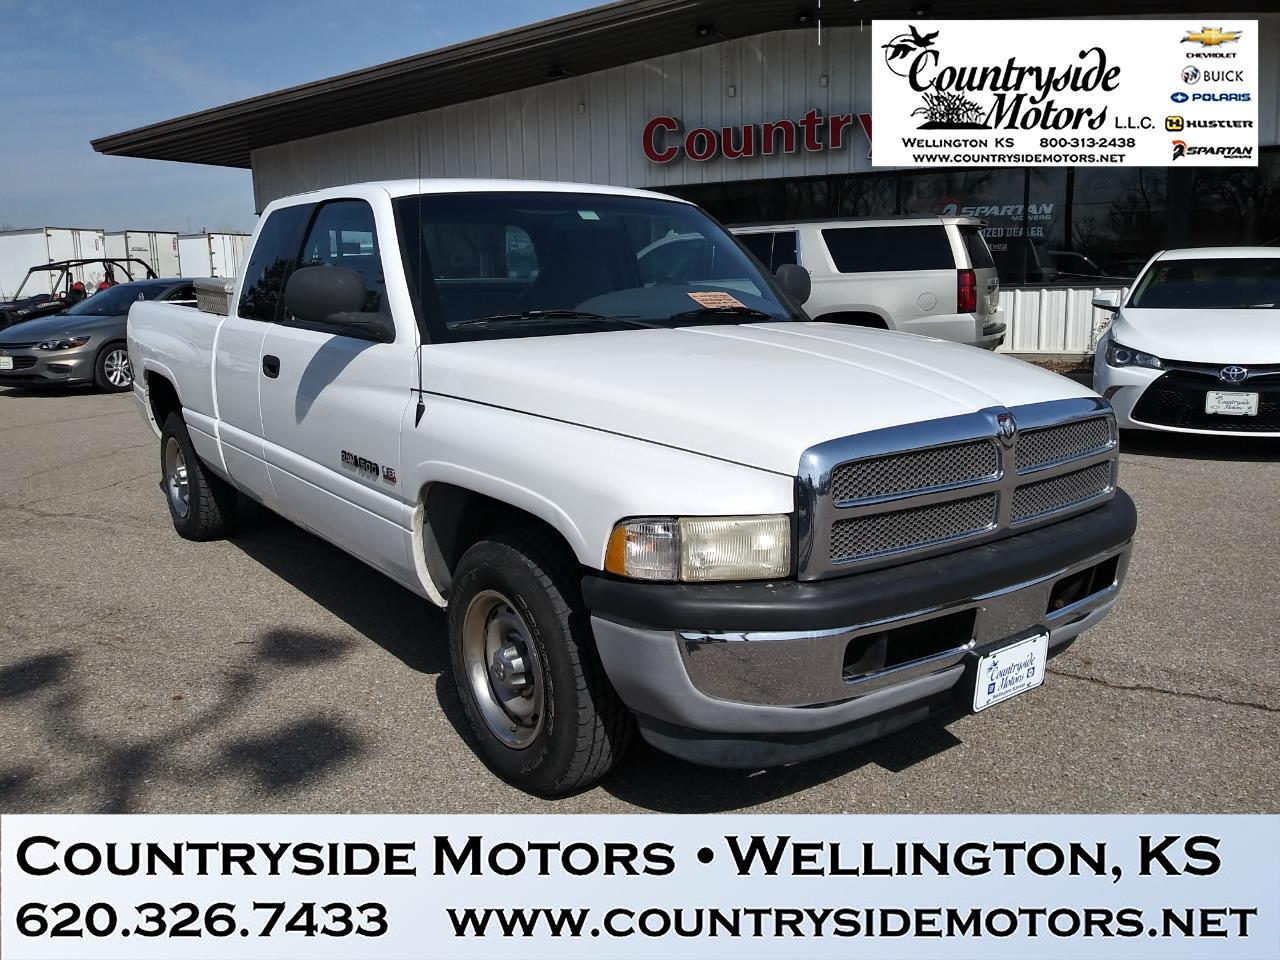 1999 Dodge Ram 1500 2DR CLUB CAB 139  WB